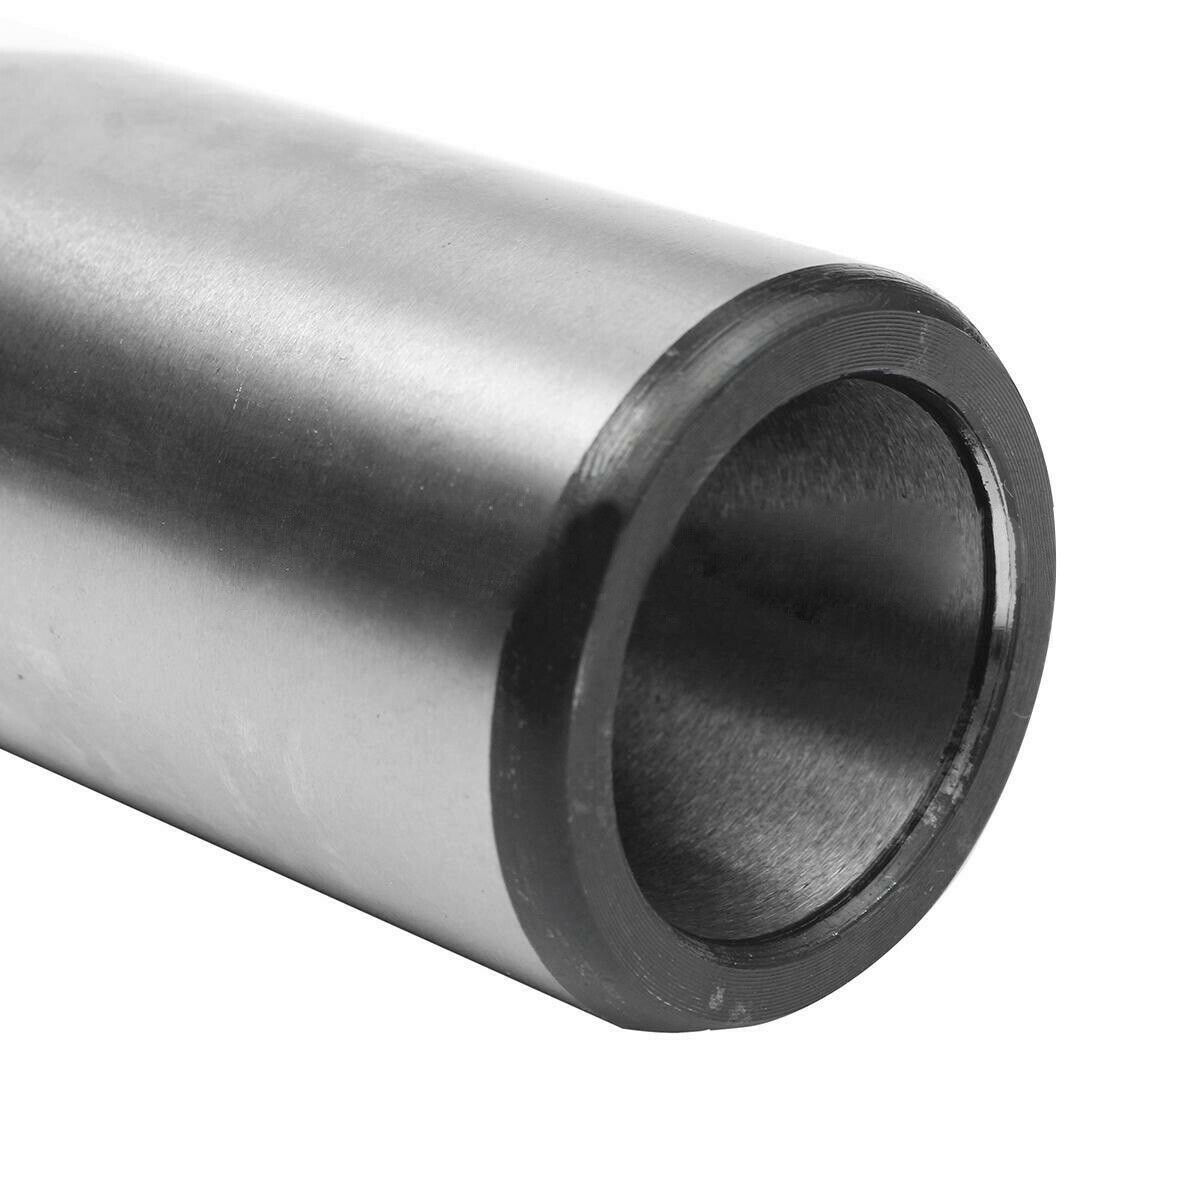 *R8 Shank To MT3 Morse Taper Arbor Adapter For 3MT MT3 Sleeve Arbor Drill Chuck*